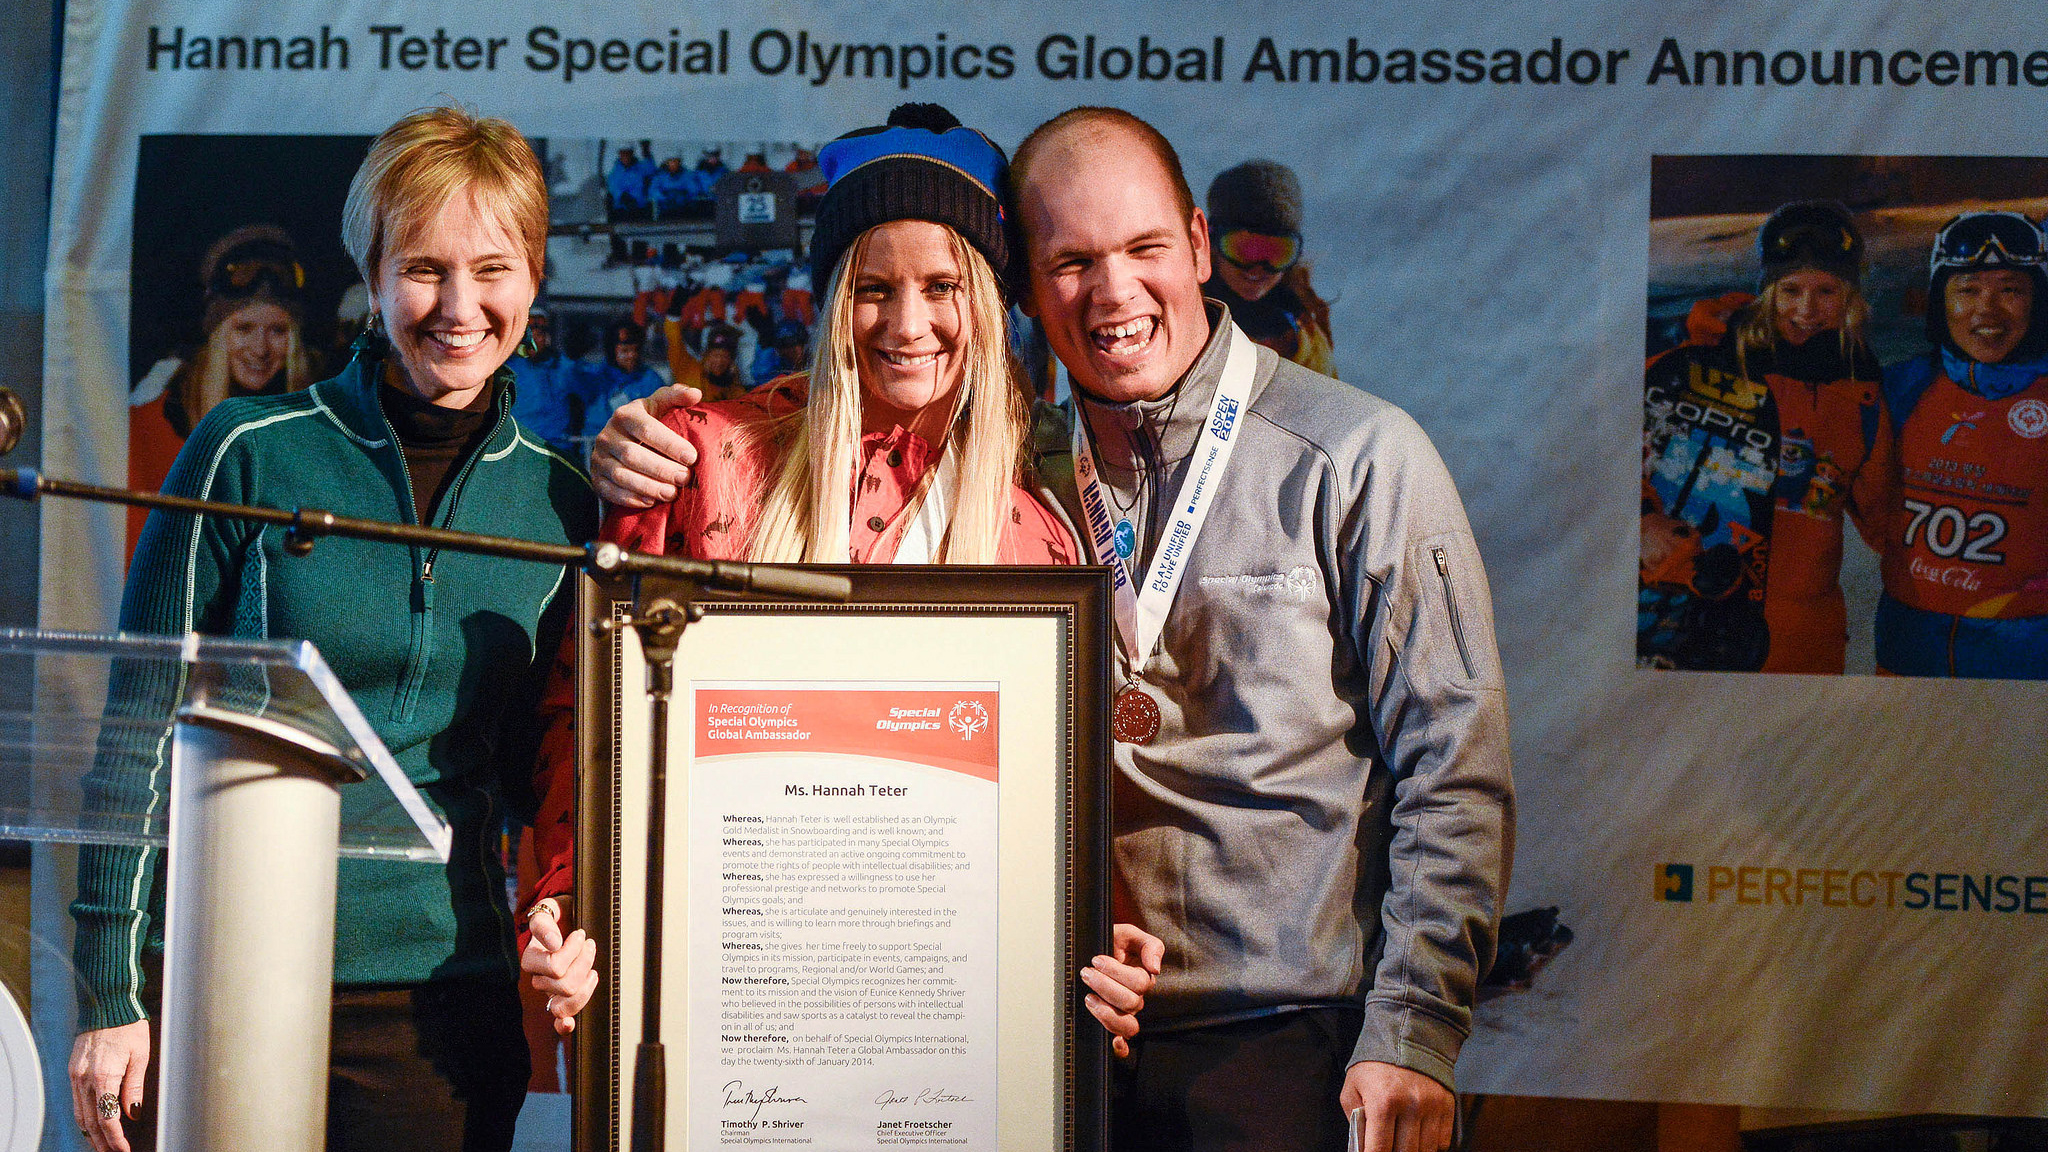 Hannah Teter is presented with her Special Olympics Global Ambassador proclamation by Special Olympics International CEO Janet Froetscher (left), and her Unified partner Special Olympics Colorado athlete Cody Field (right).